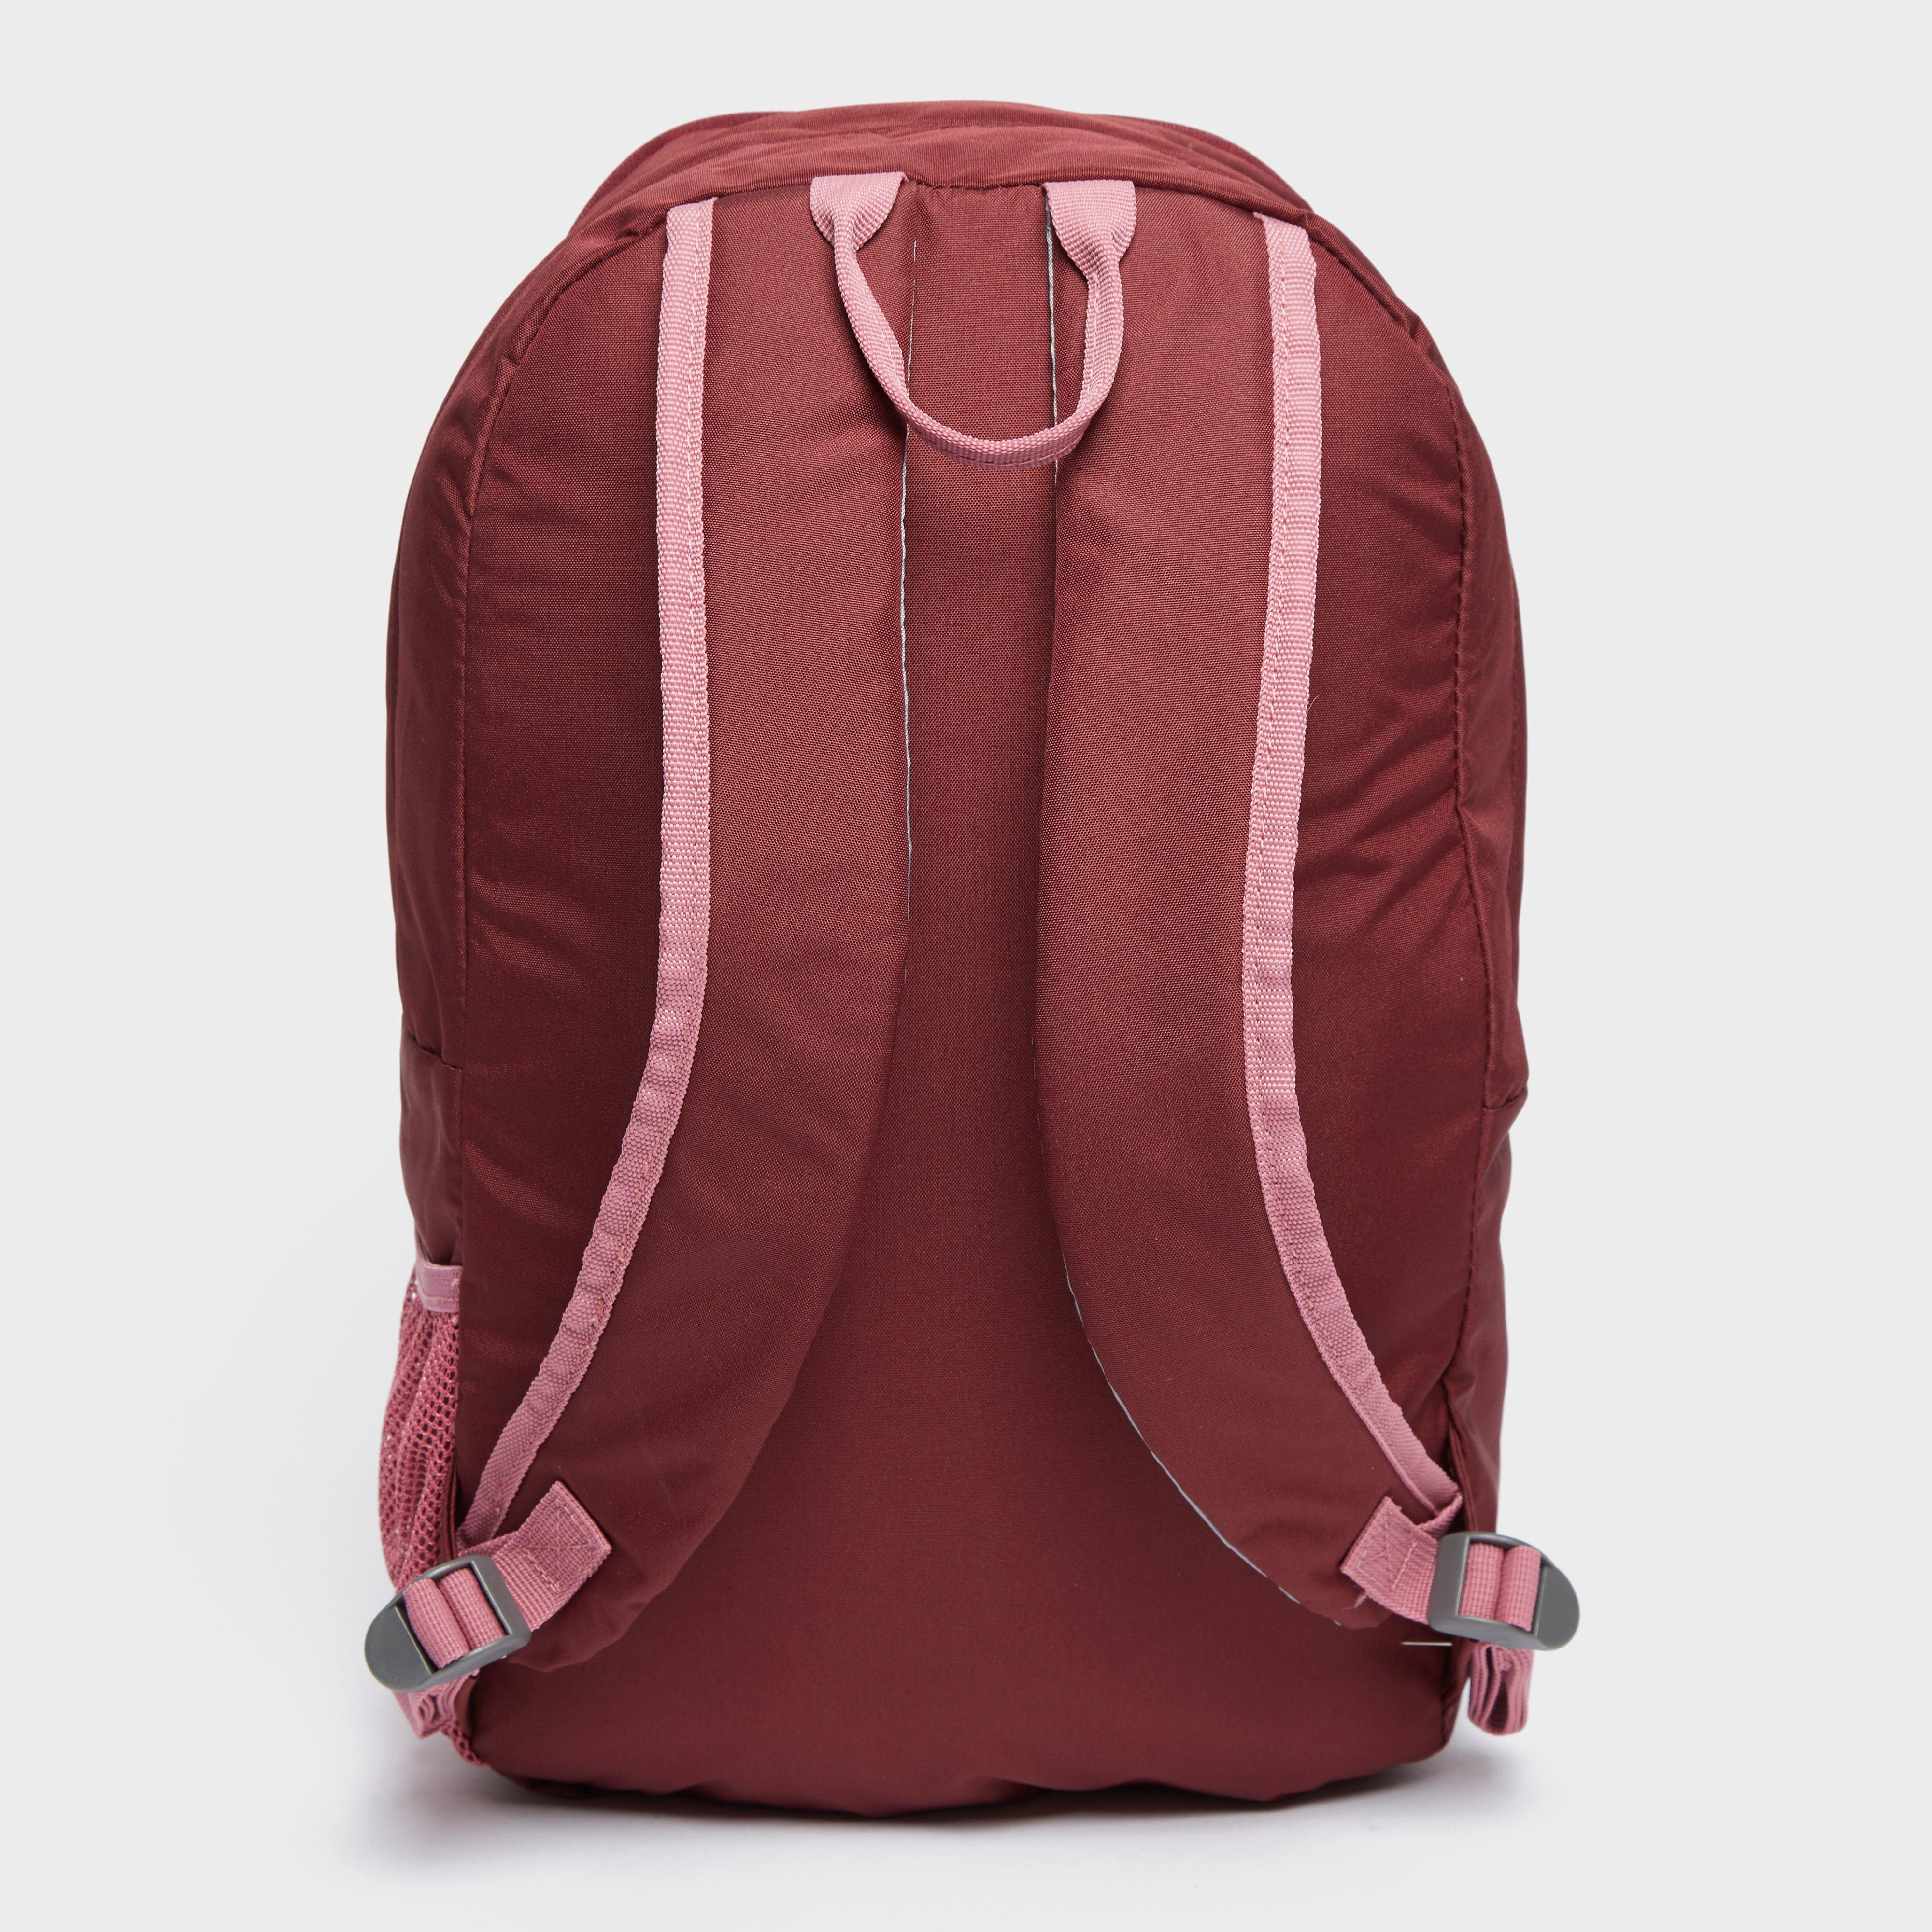 New Eurohike Active 20 Daypack